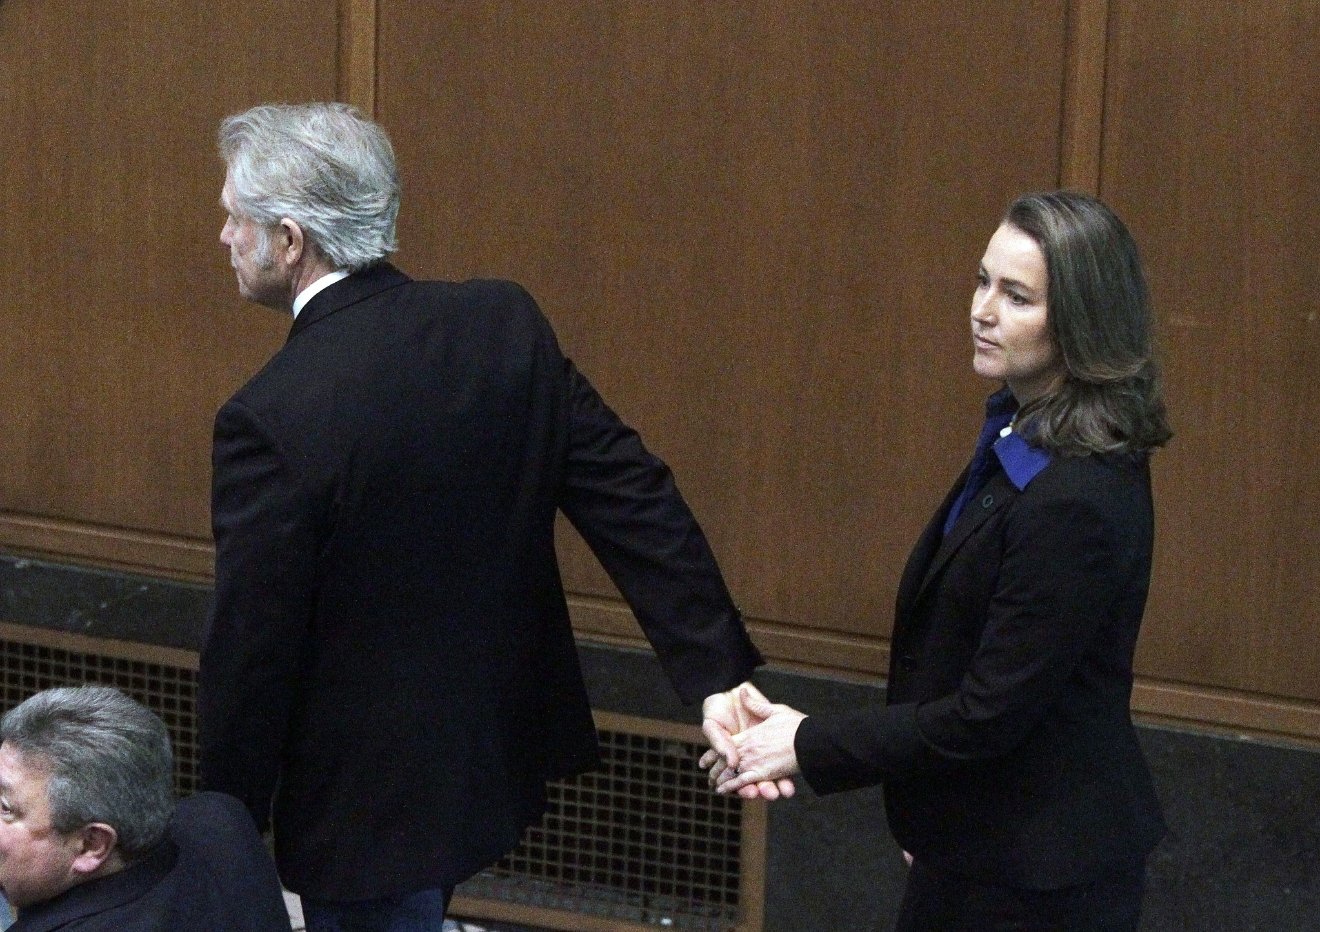 FILE - In this Jan. 12, 2015, file photo, Oregon Gov. John Kitzhaber escorts his fiancee, Cylvia Hayes, onto the House floor before he is sworn in for an unprecedented fourth term as governor in Salem, Ore. A federal appellate court panel has ruled that a subpoena seeking emails from former Oregon Gov. Kitzhaber as part of an influence-peddling investigation is too broad. Kitzhaber resigned in 2015 amid suspicion that his fiancee, Cylvia Hayes, used her relationship with him to earn lucrative consulting contracts. (AP Photo/Don Ryan, file)